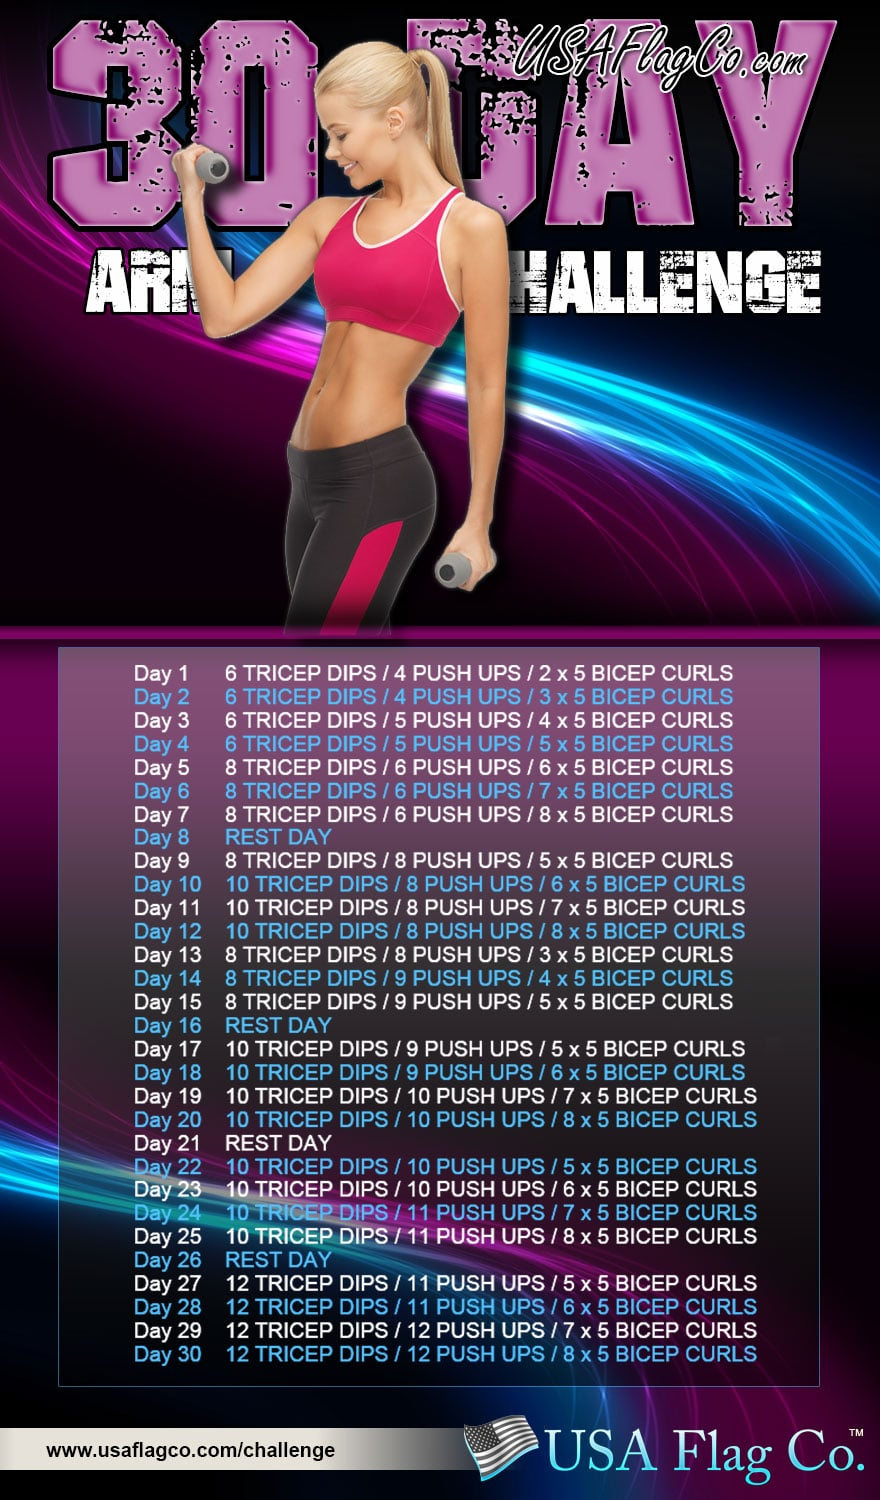 30 Day Arm Challenge by USA Flag Co.